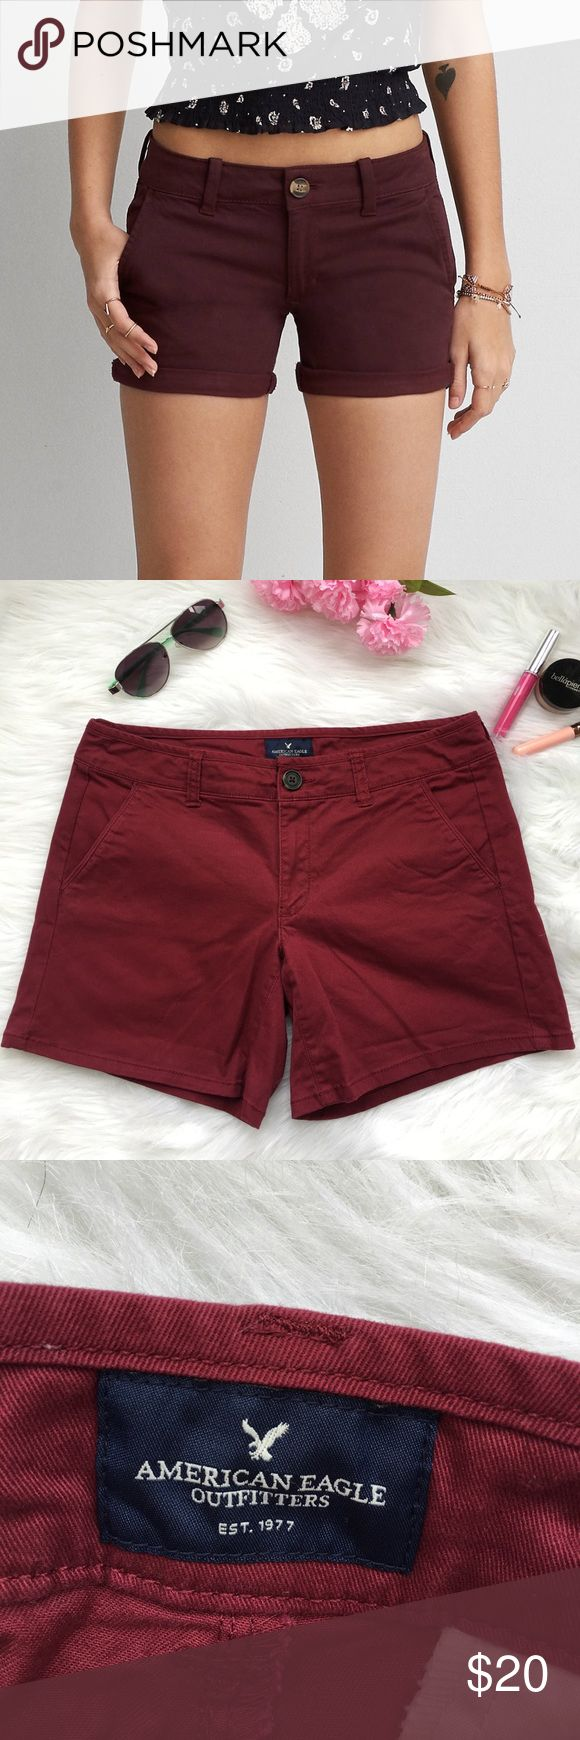 "AEO burgundy midi shorts ◾️NWOT  ◾️ships in 24 hours  ◾️no trades ◾️make me an offer 🌸 ◾️17"" laying flat across, 8"" rise, 6""inseam American Eagle Outfitters Shorts"